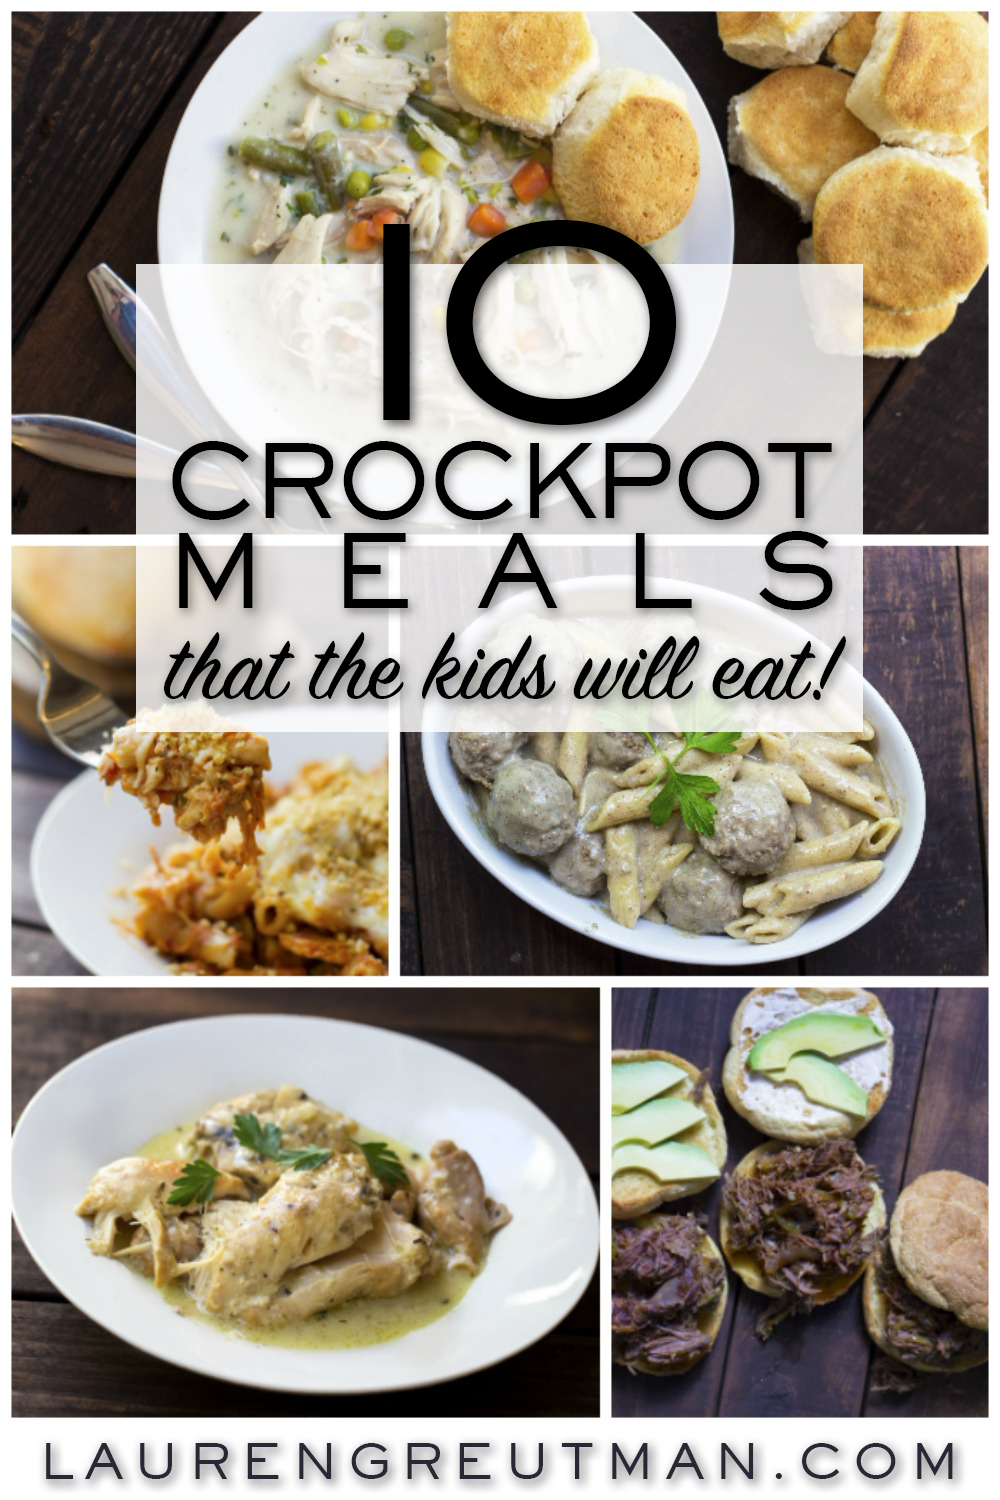 Here's an AWESOME list of 10 easy and amazing crockpot meals that your kids will actually eat!